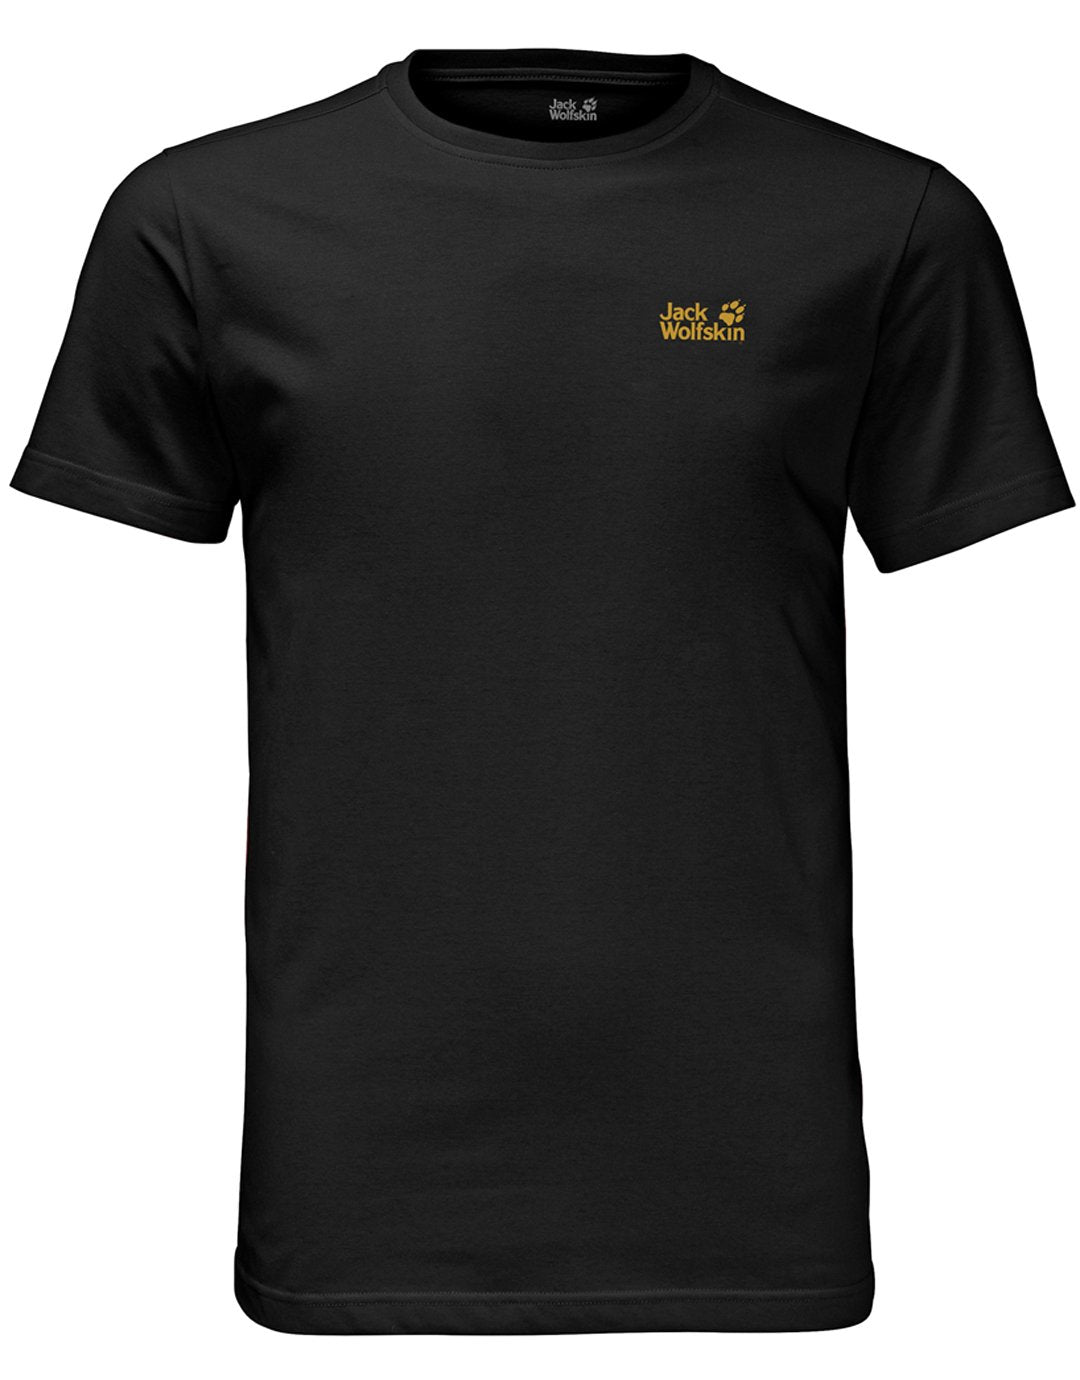 Mens Essential Tee - Black - Extra Large Black